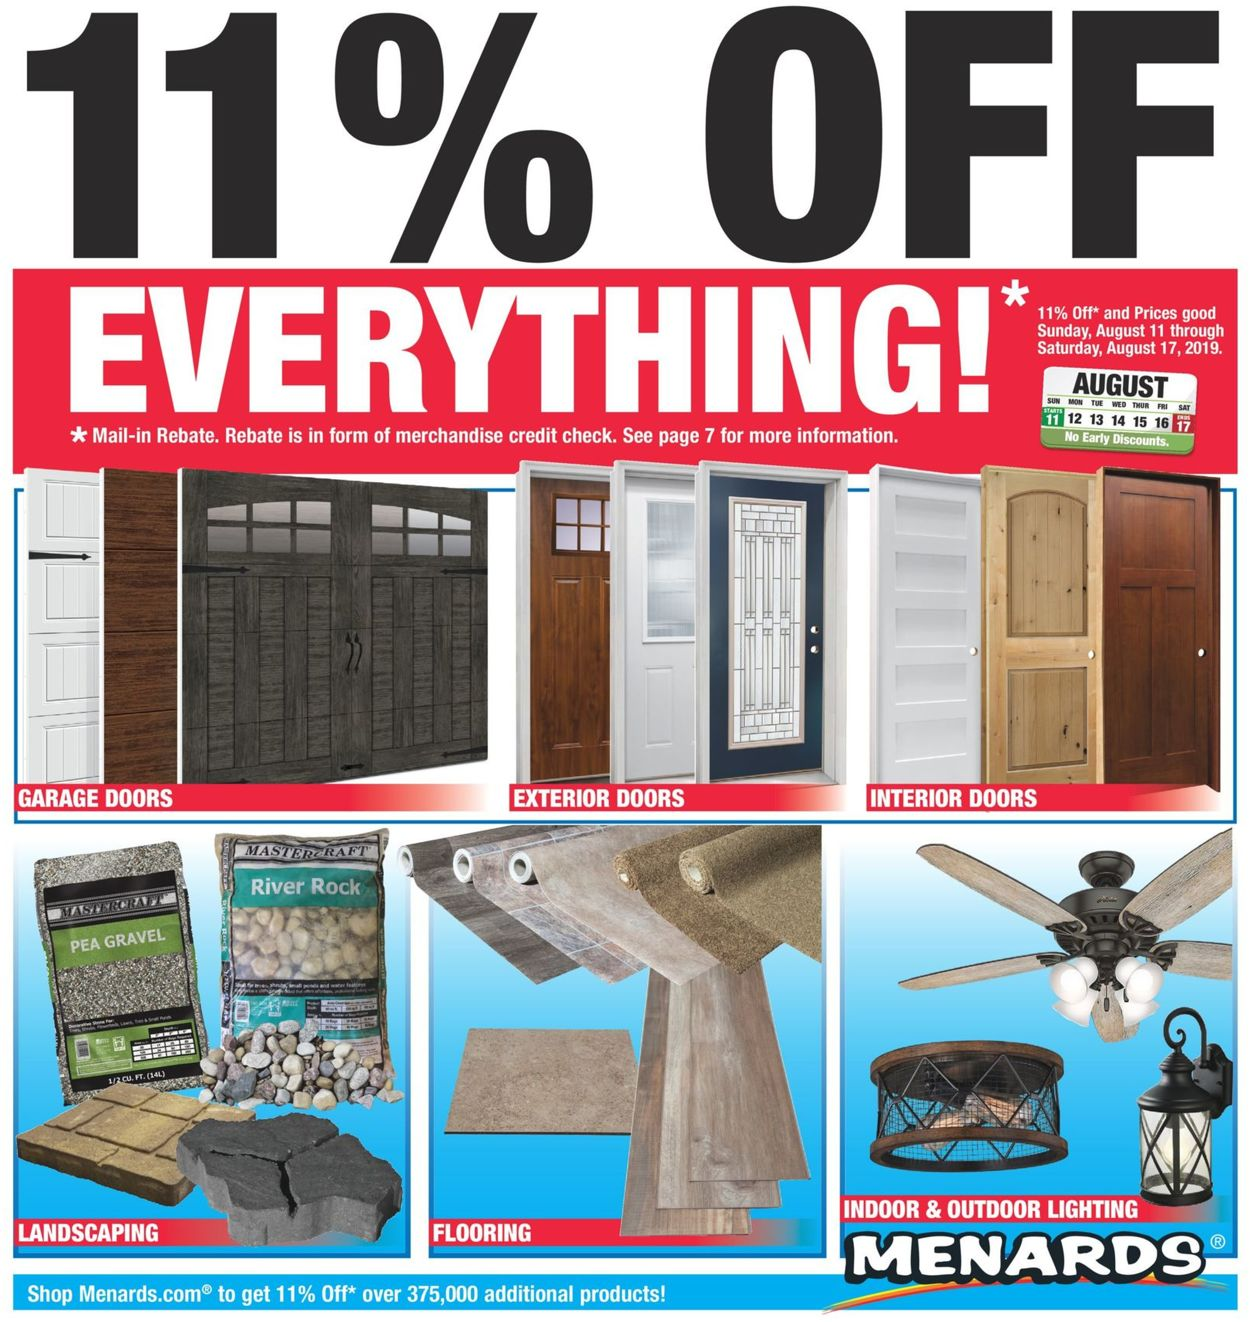 Menards Current weekly ad 08/11 - 08/17/2019 - frequent-ads com